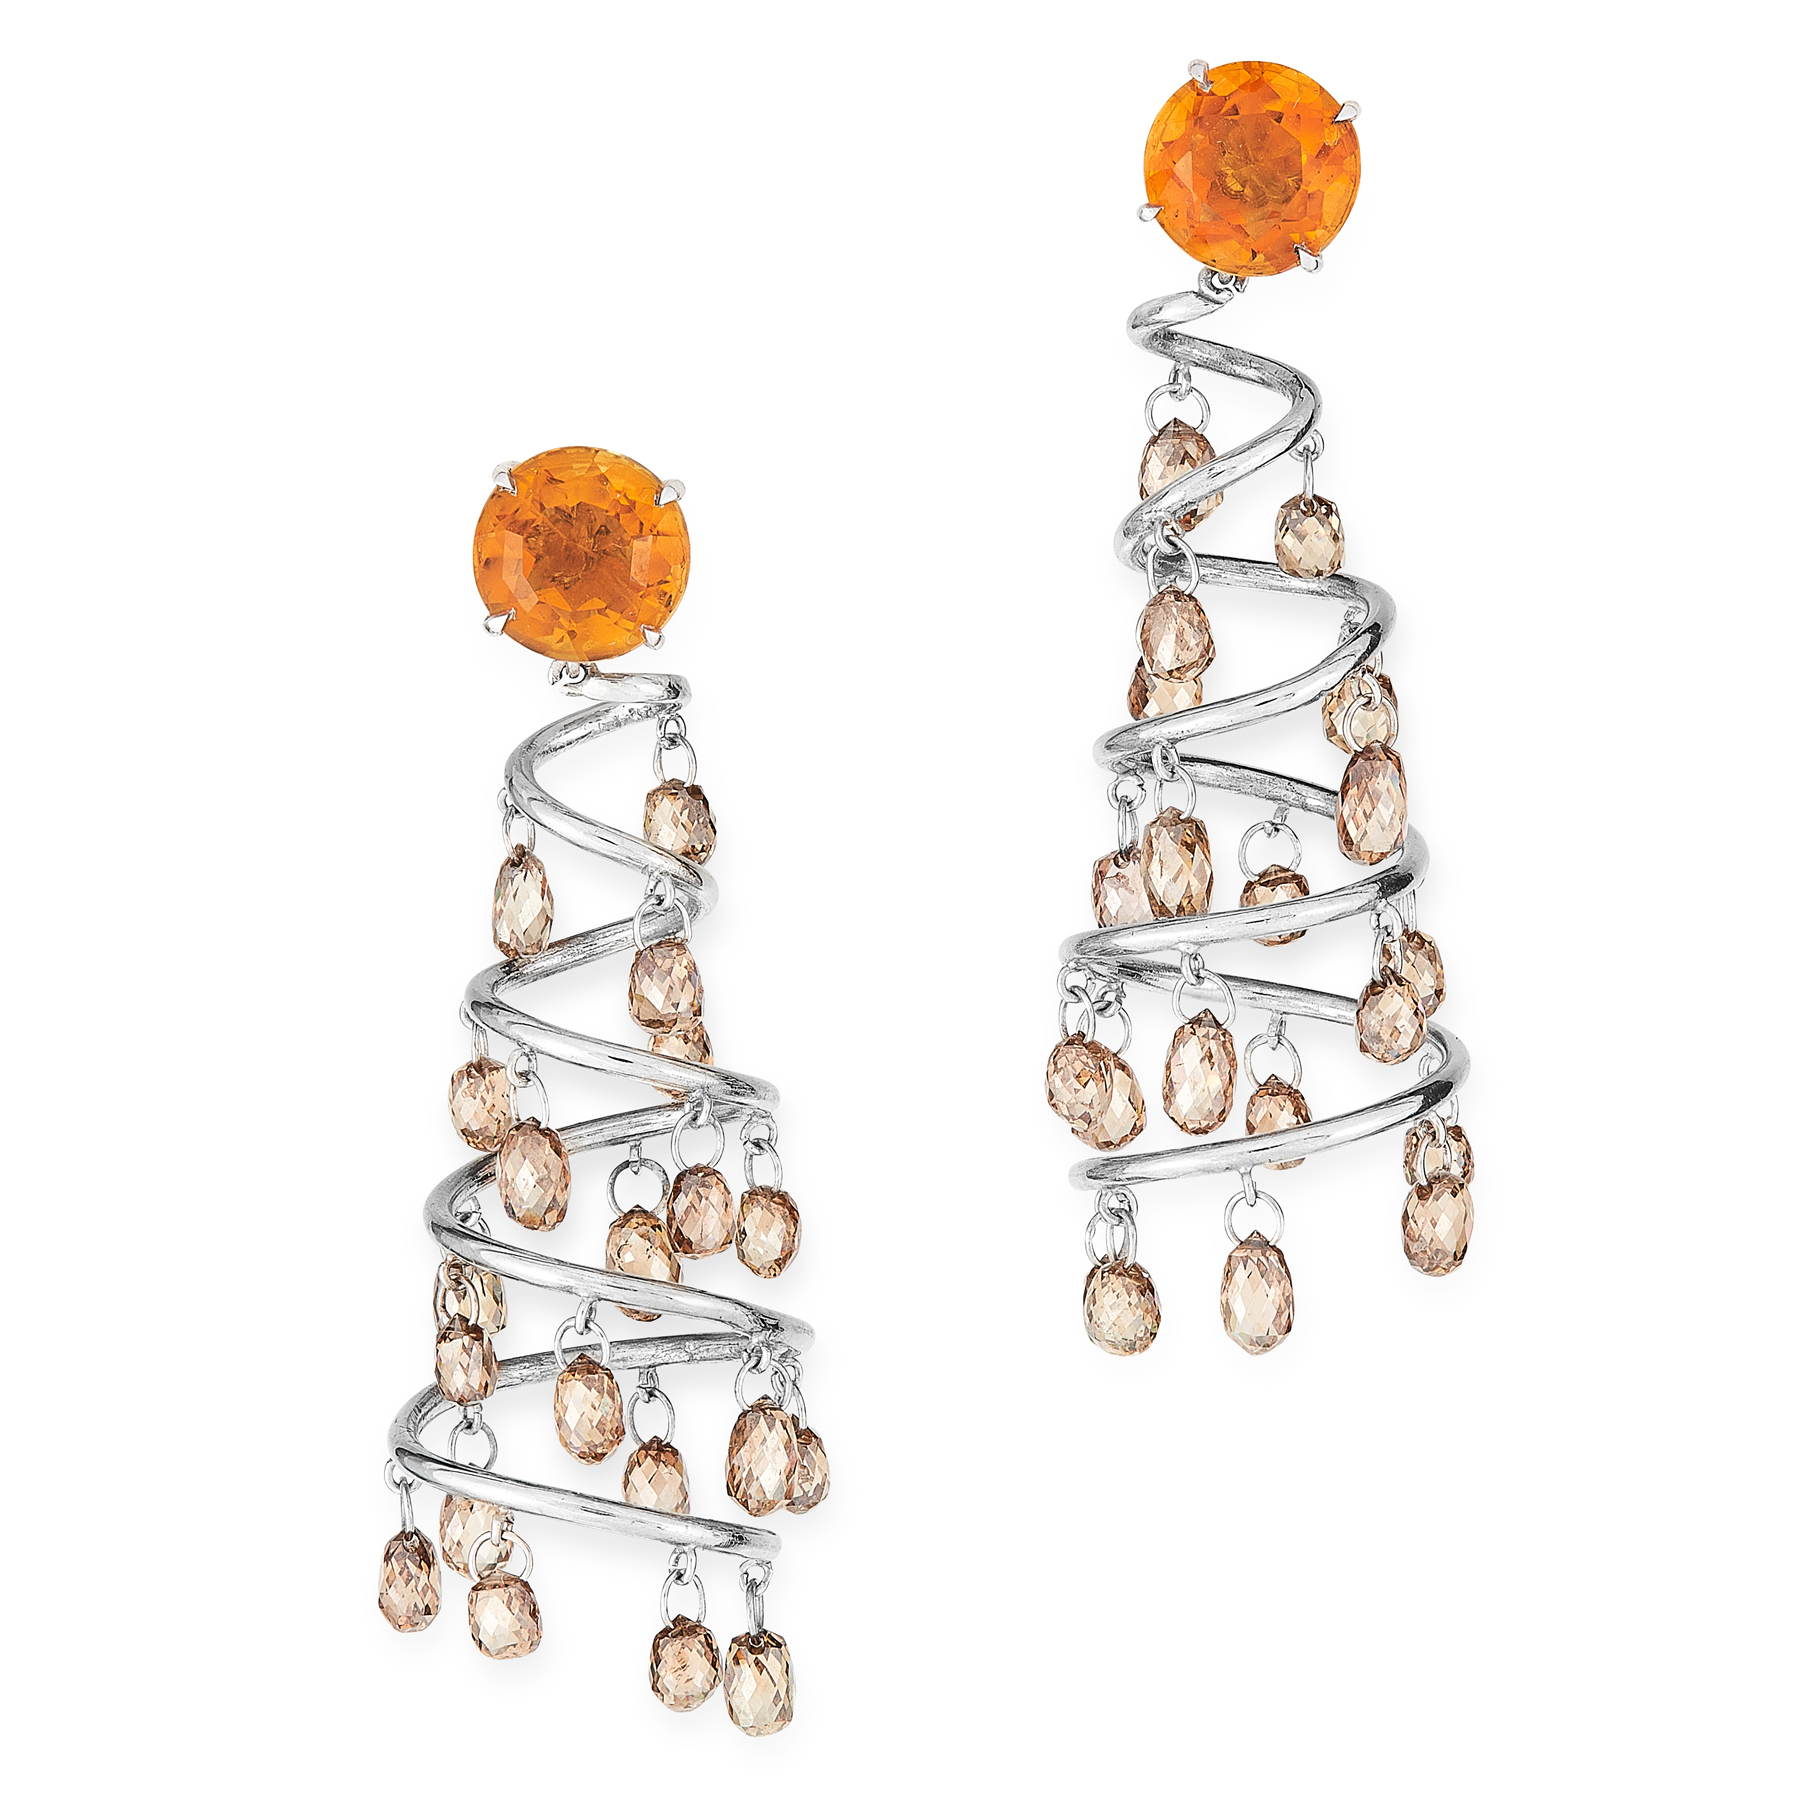 Lot 32 - A PAIR OF DIAMOND AND CITRINE CHANDELIER EARRINGS in 18ct white gold, each designed as a tapering